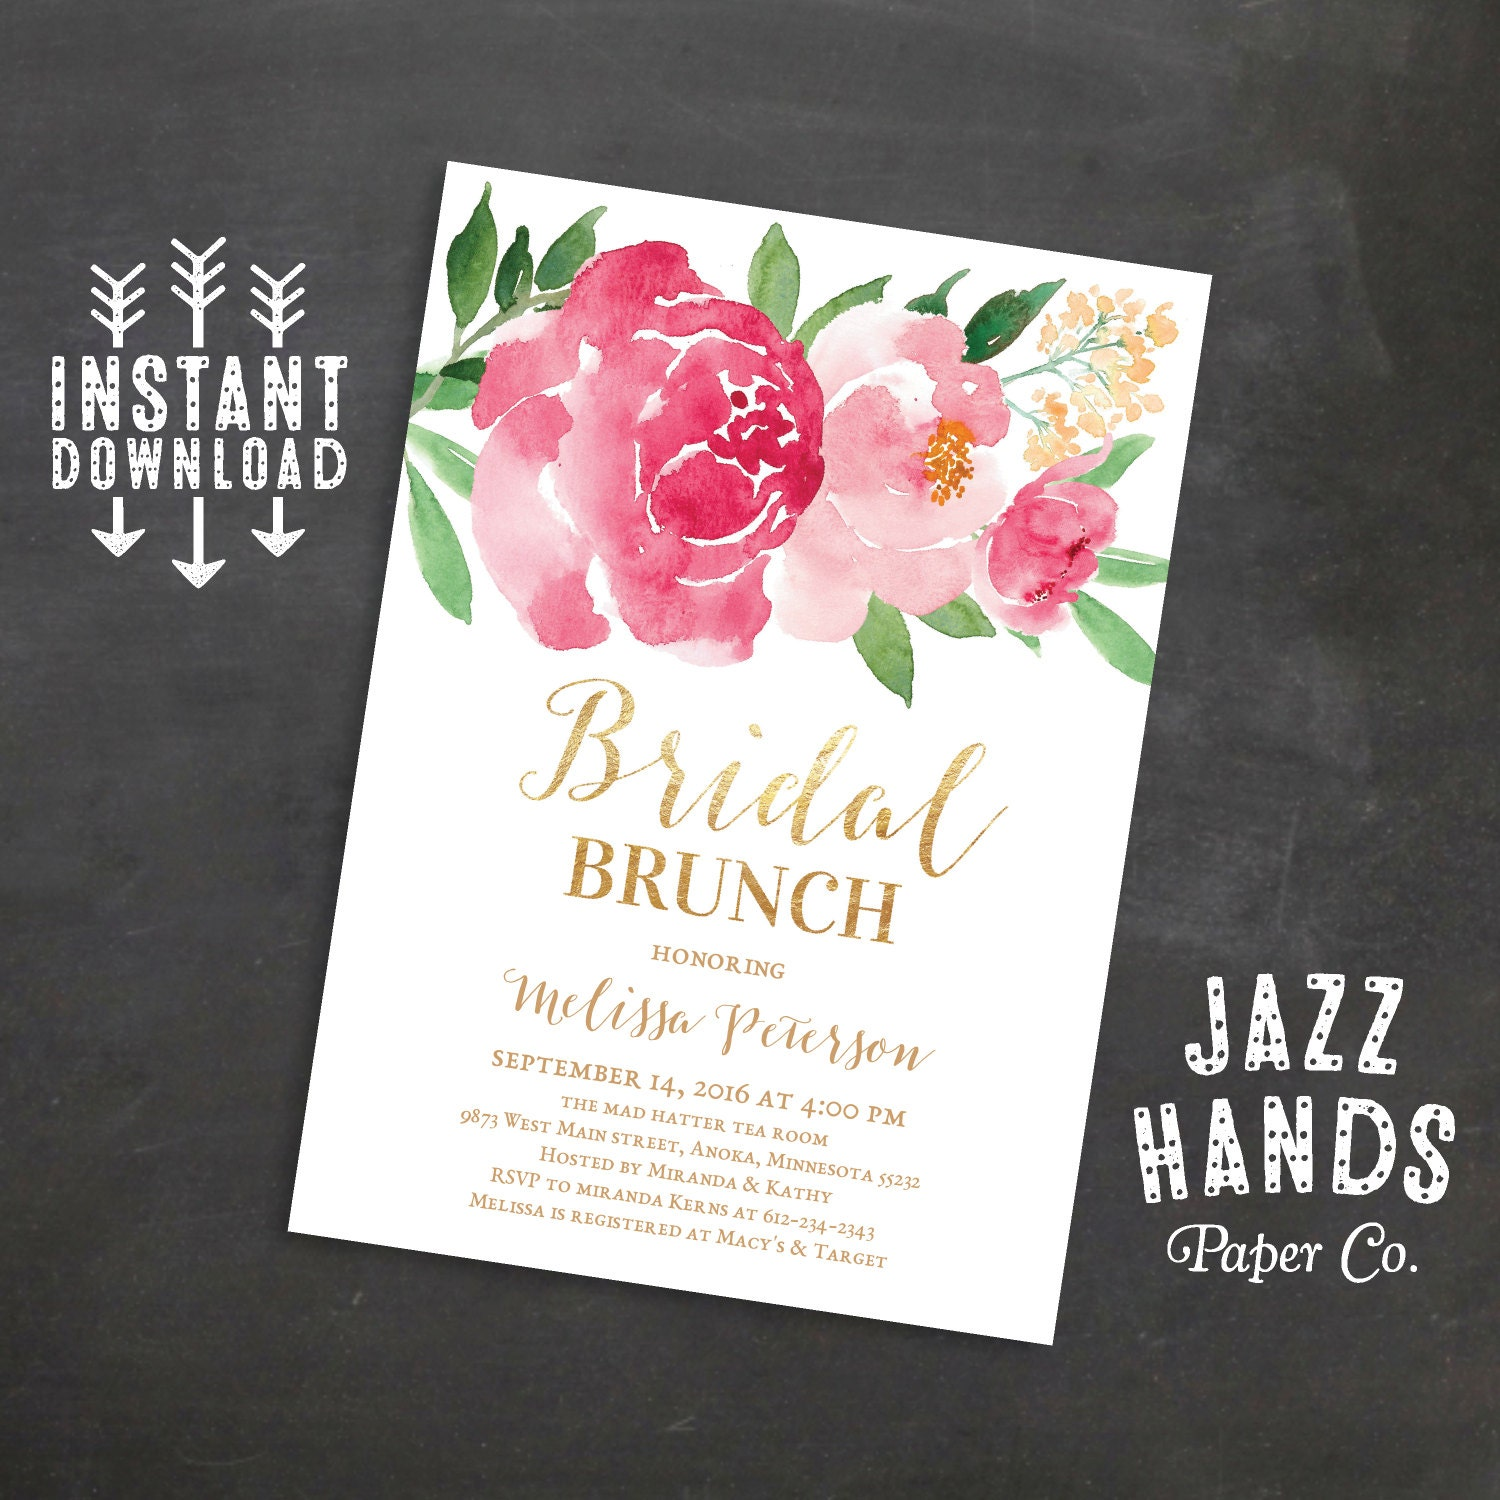 Printable Bridal Shower Brunch Invitation, Wedding Shower Invites, Bridal  Brunch Invitation, Wedding, Watercolor Floral, Instant Download  Printable Bridal Shower Invites